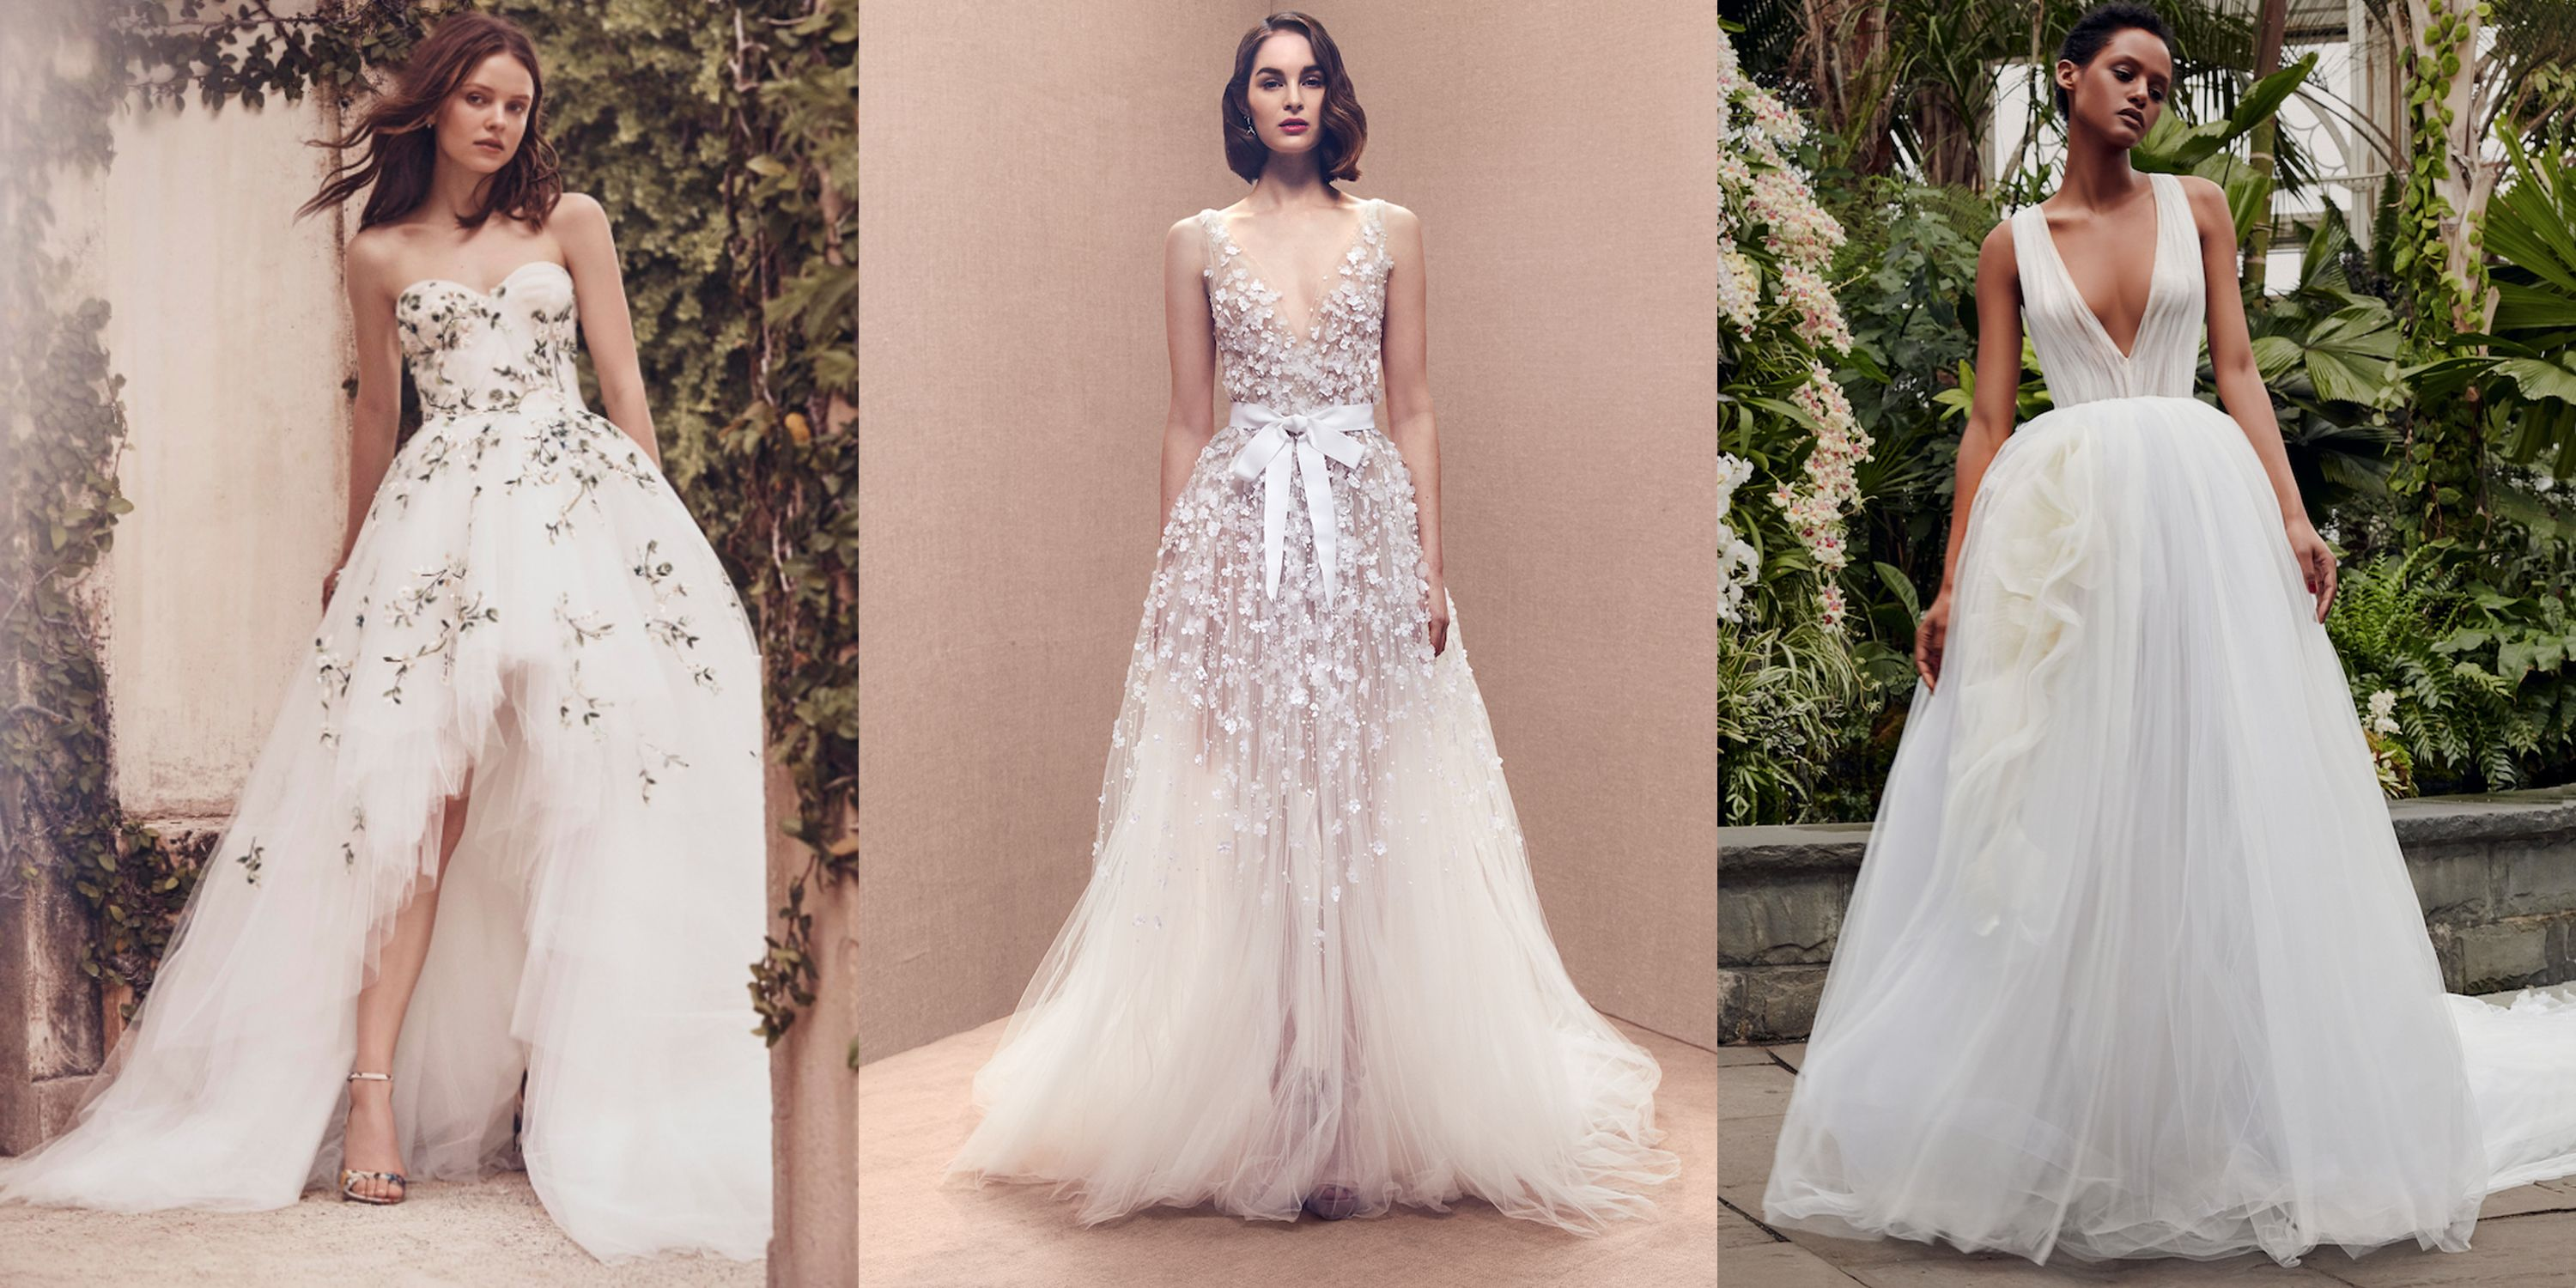 These Spring 2020 Wedding Dresses Are Beyond Dreamy